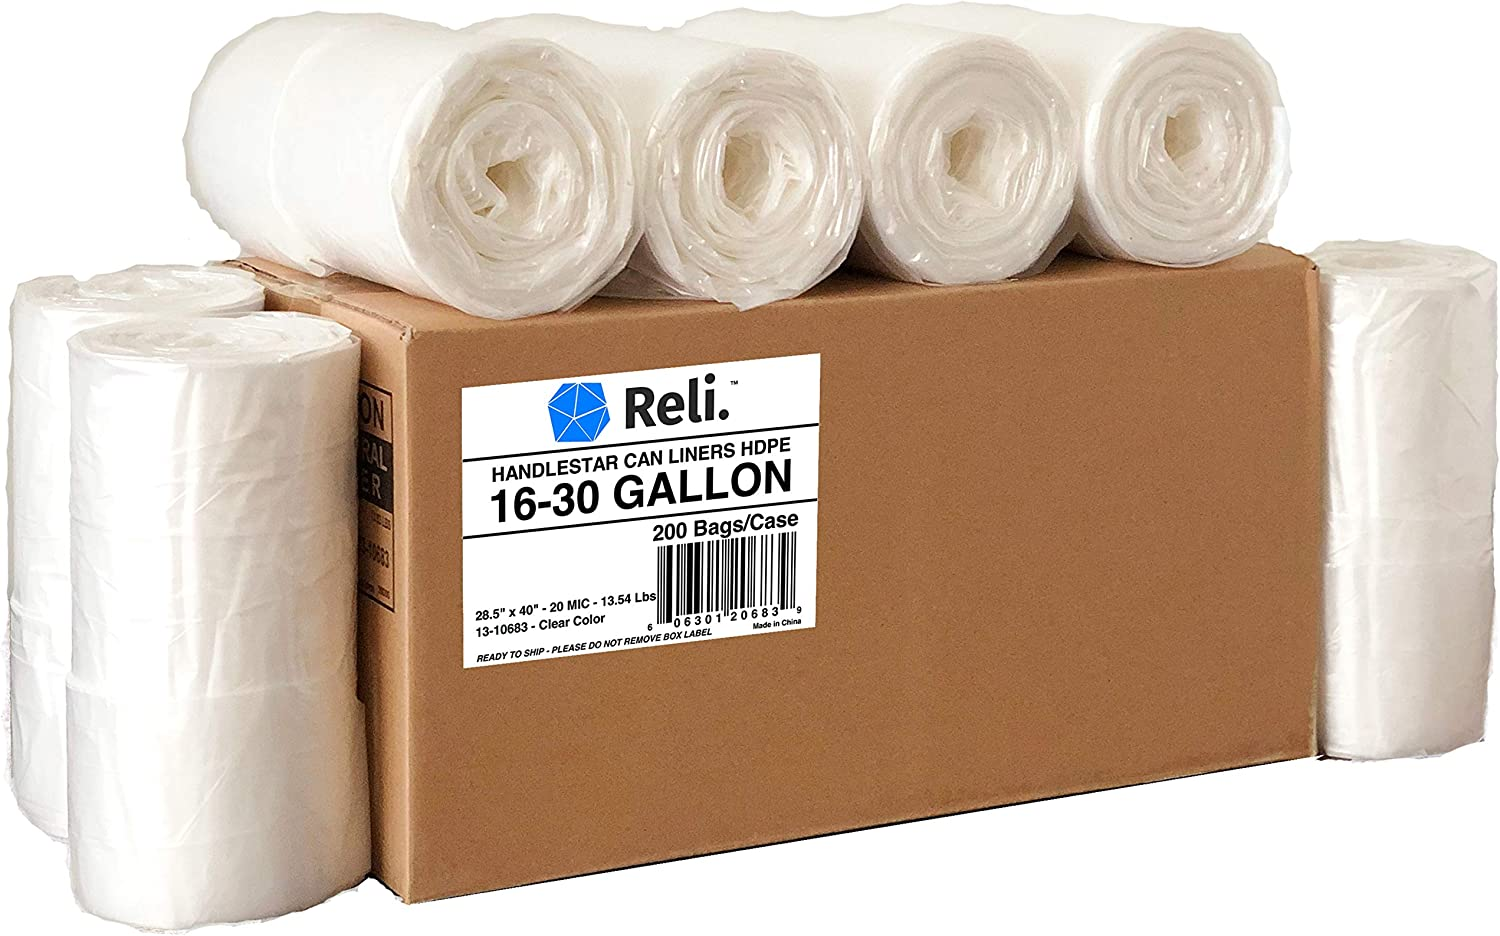 Reli. Trash Bags with Handles (16-30 Gallon) (200 Count Wholesale) - Double-Ply HandleStar Garbage Bags (Clear), Handle Tie Can Liners with 16 Gallon (16 Gal) to 30 Gallon (30 Gal) Capacity